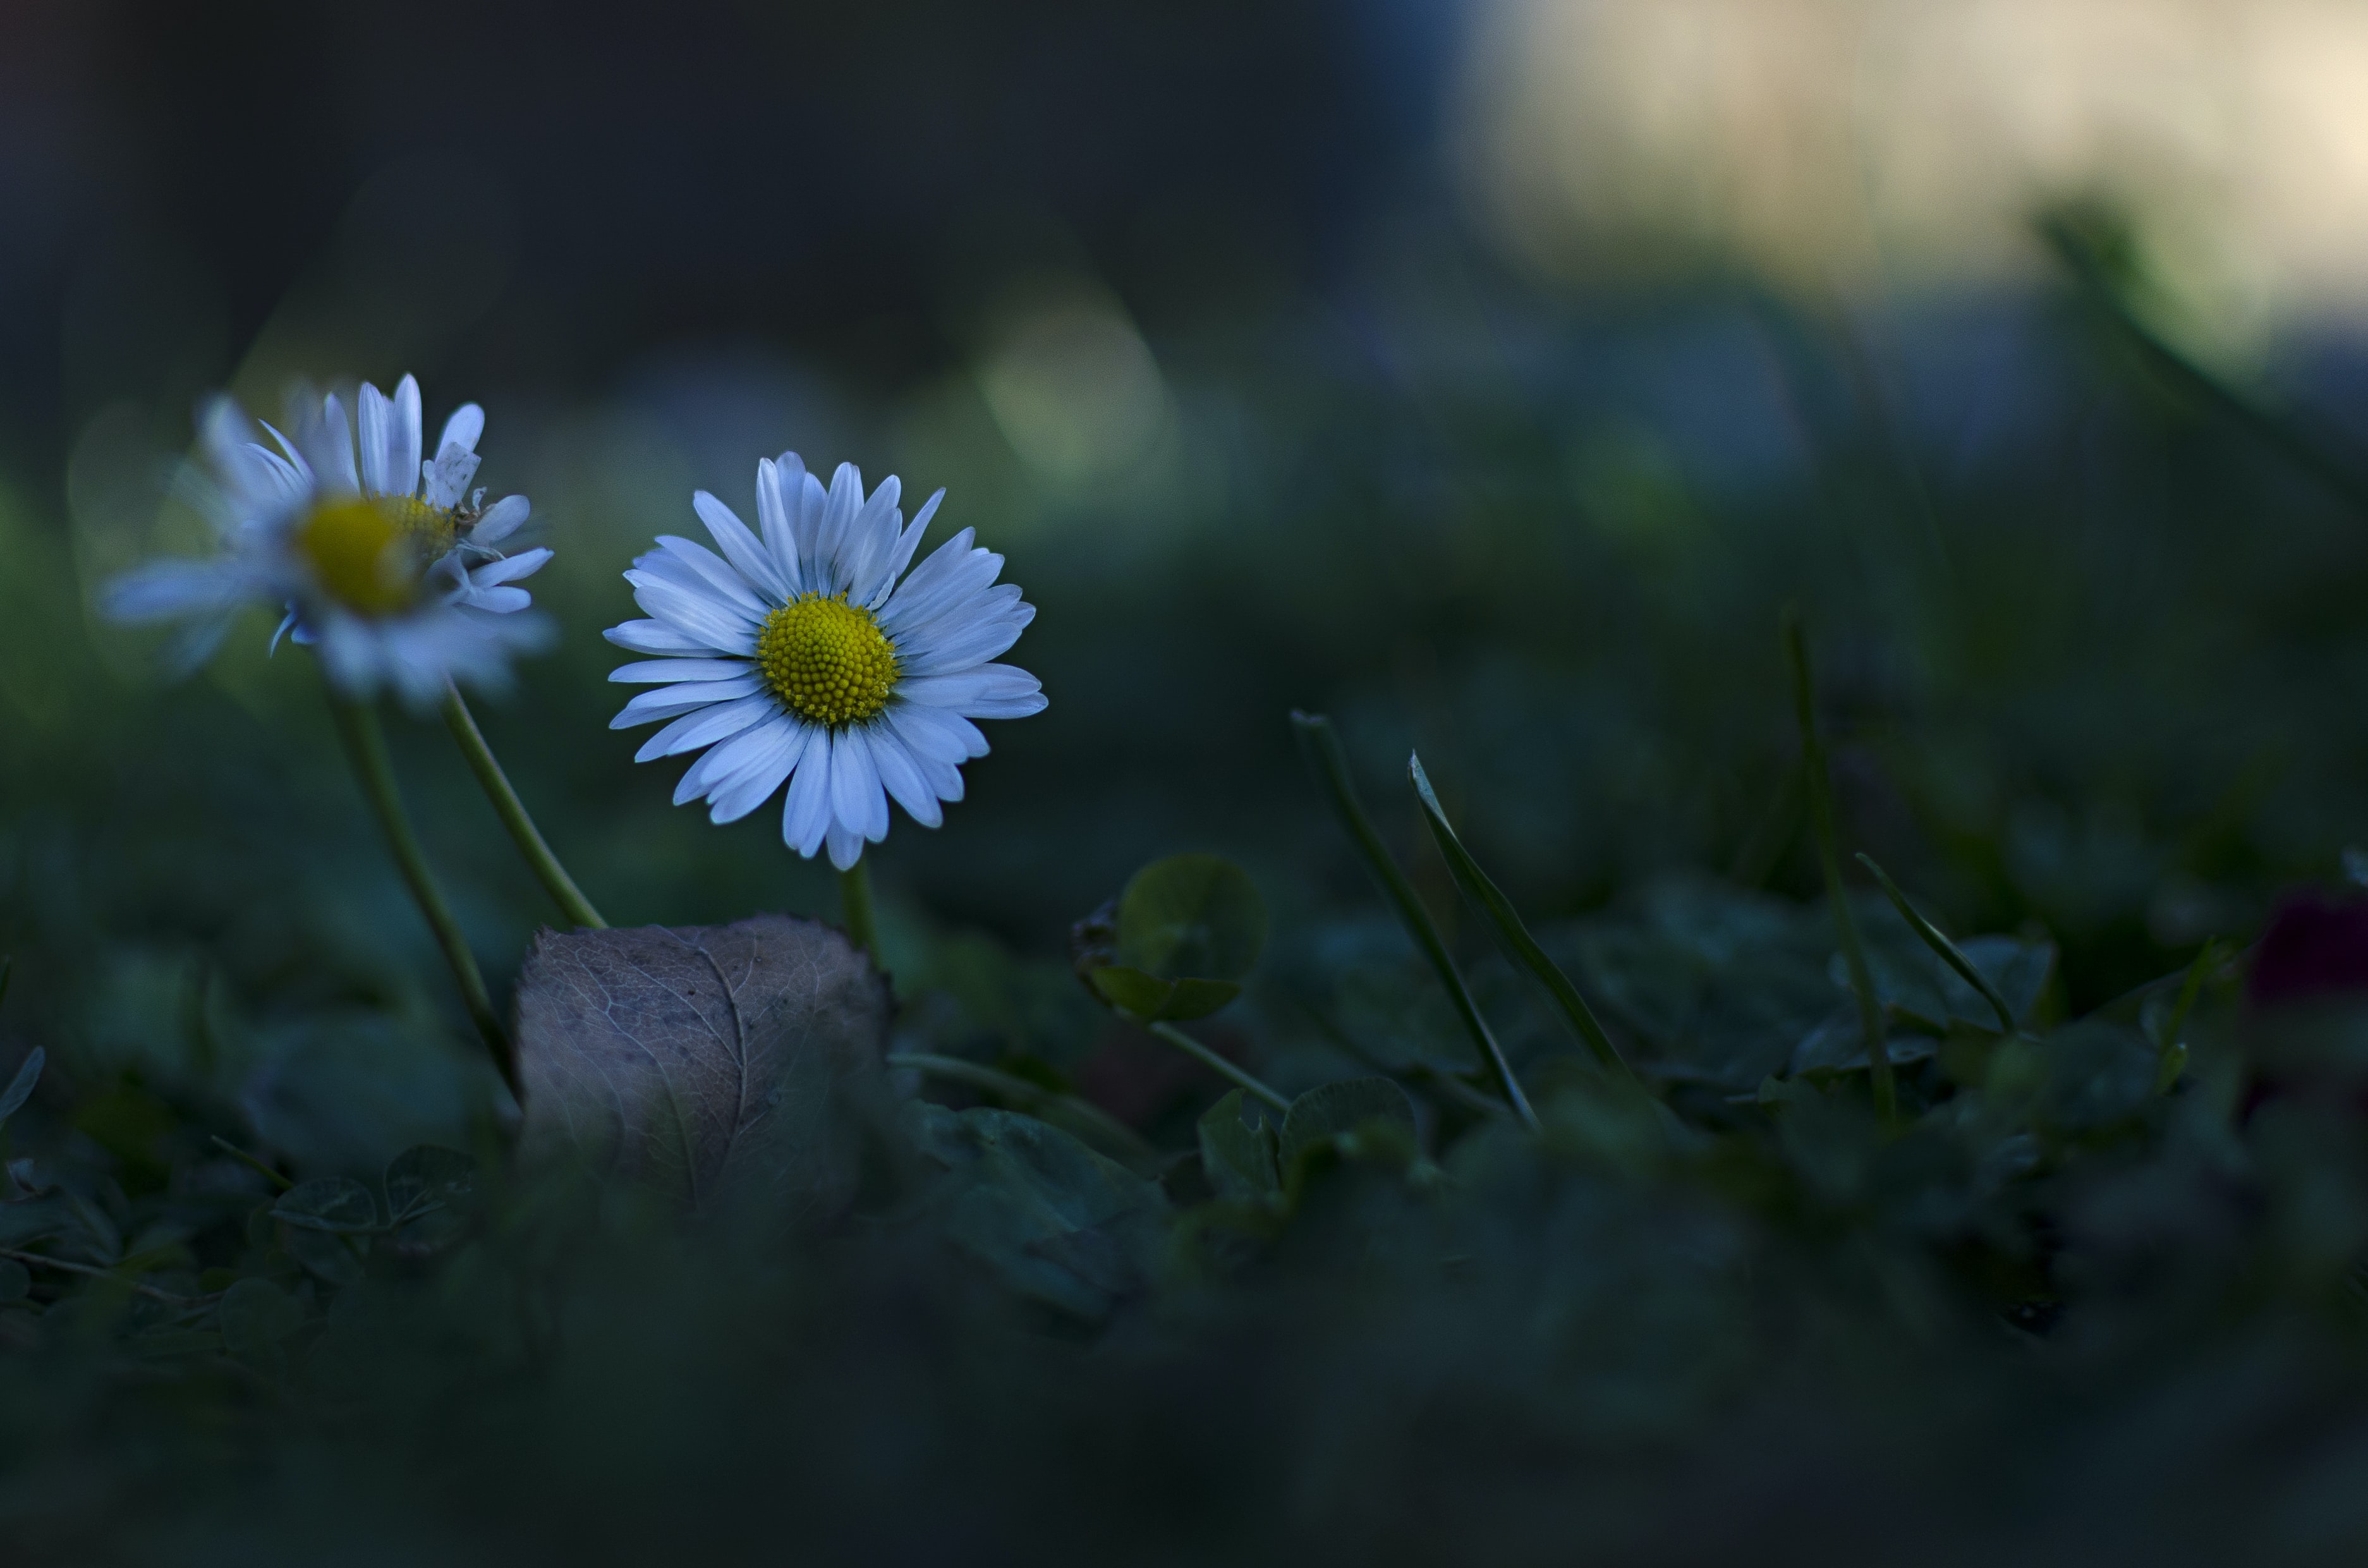 photo of two white daisy flowers